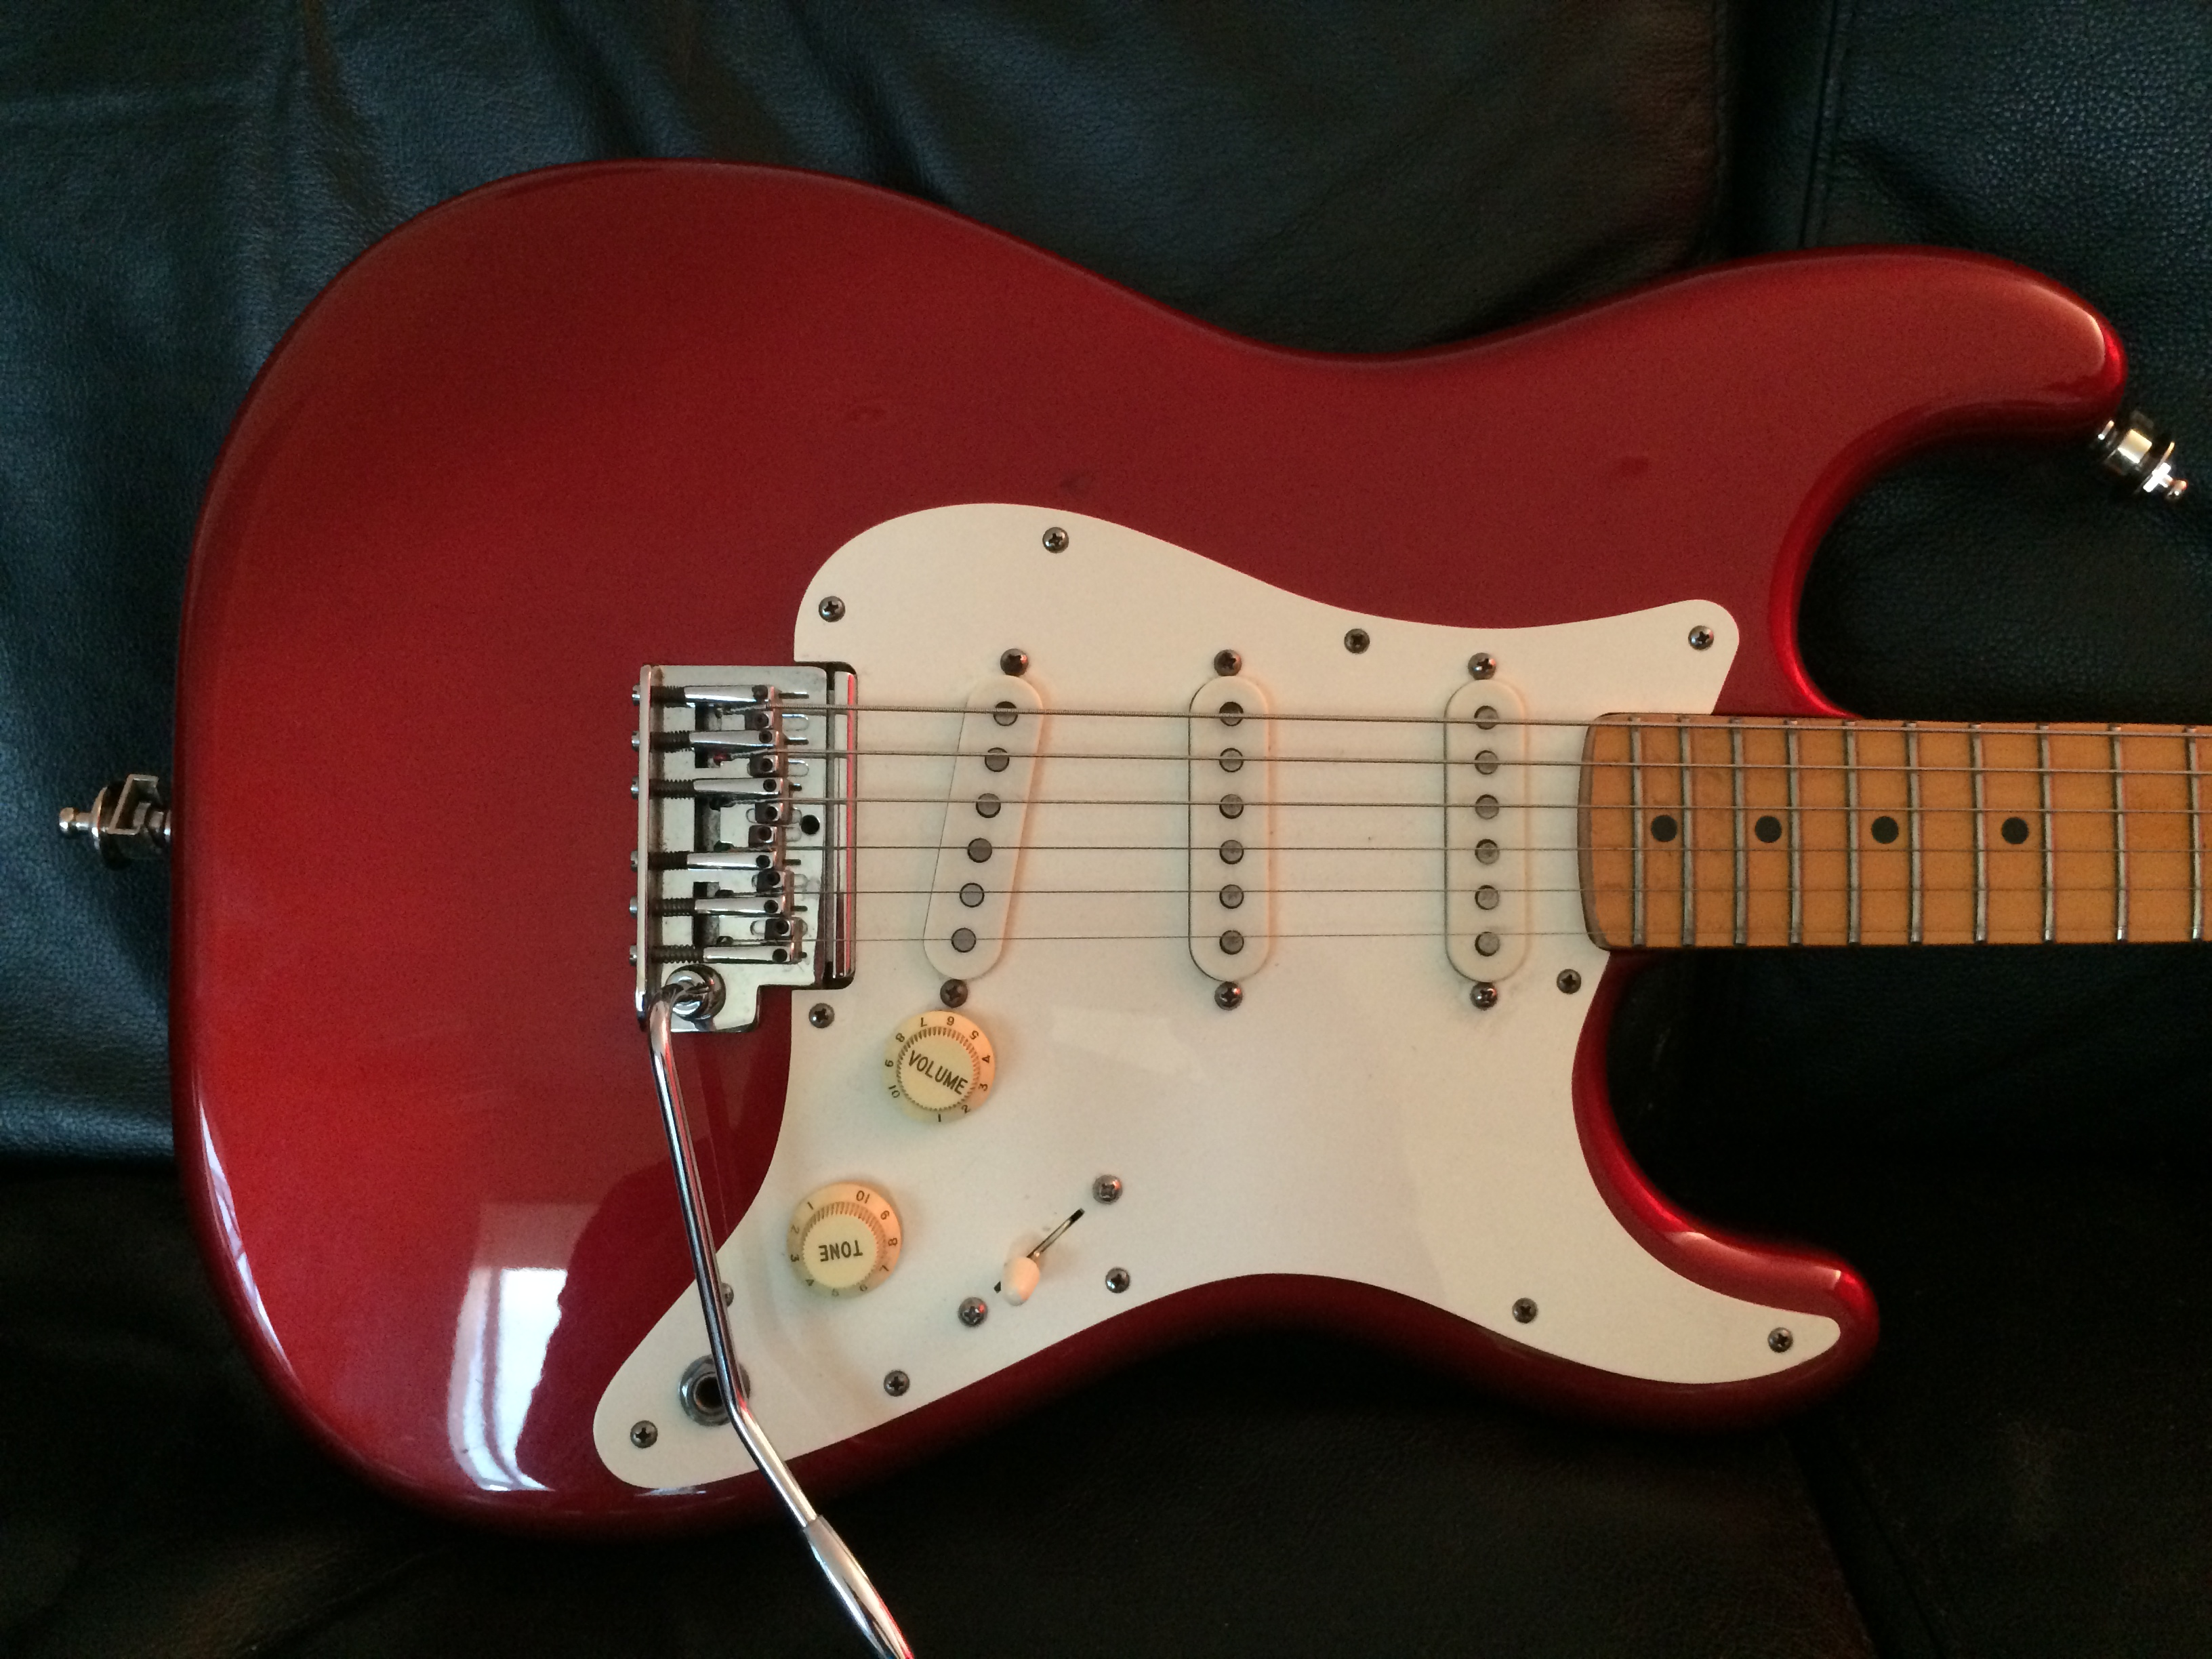 1983 Fender Stratocaster Dan Smith